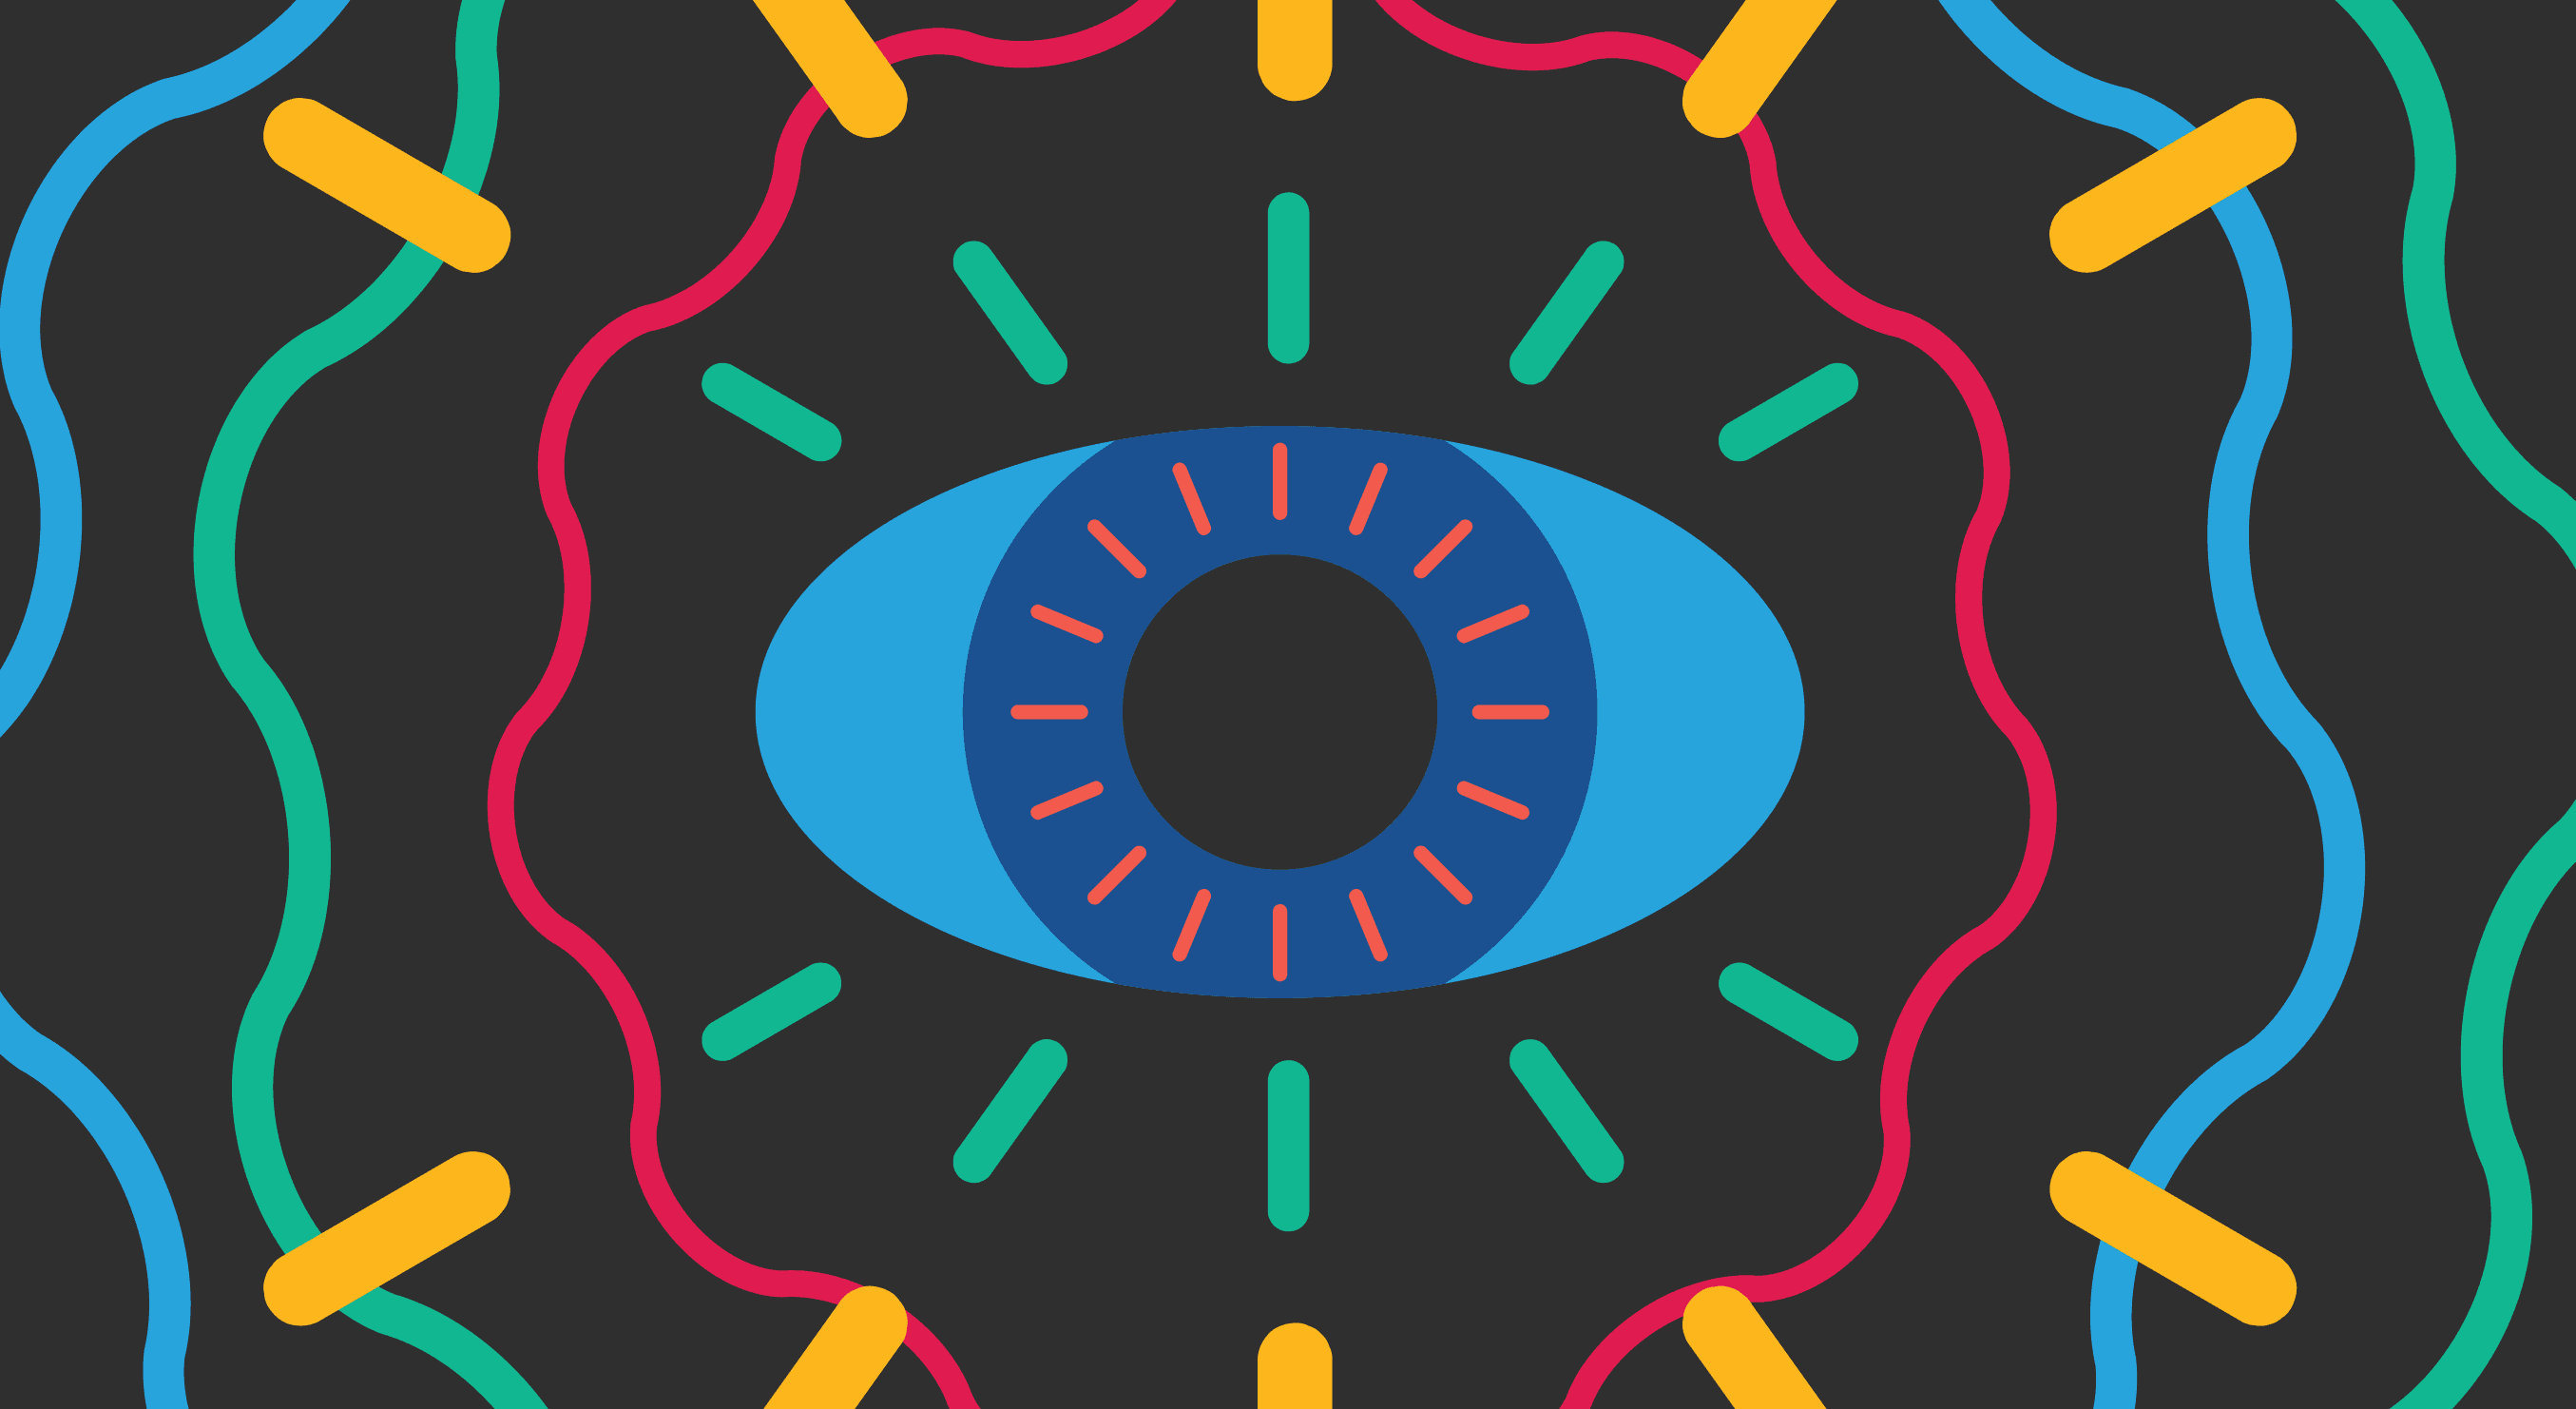 Abstract drawing of an eye. Black background with bold, bright colors. CVI Now logo in bottom corner.